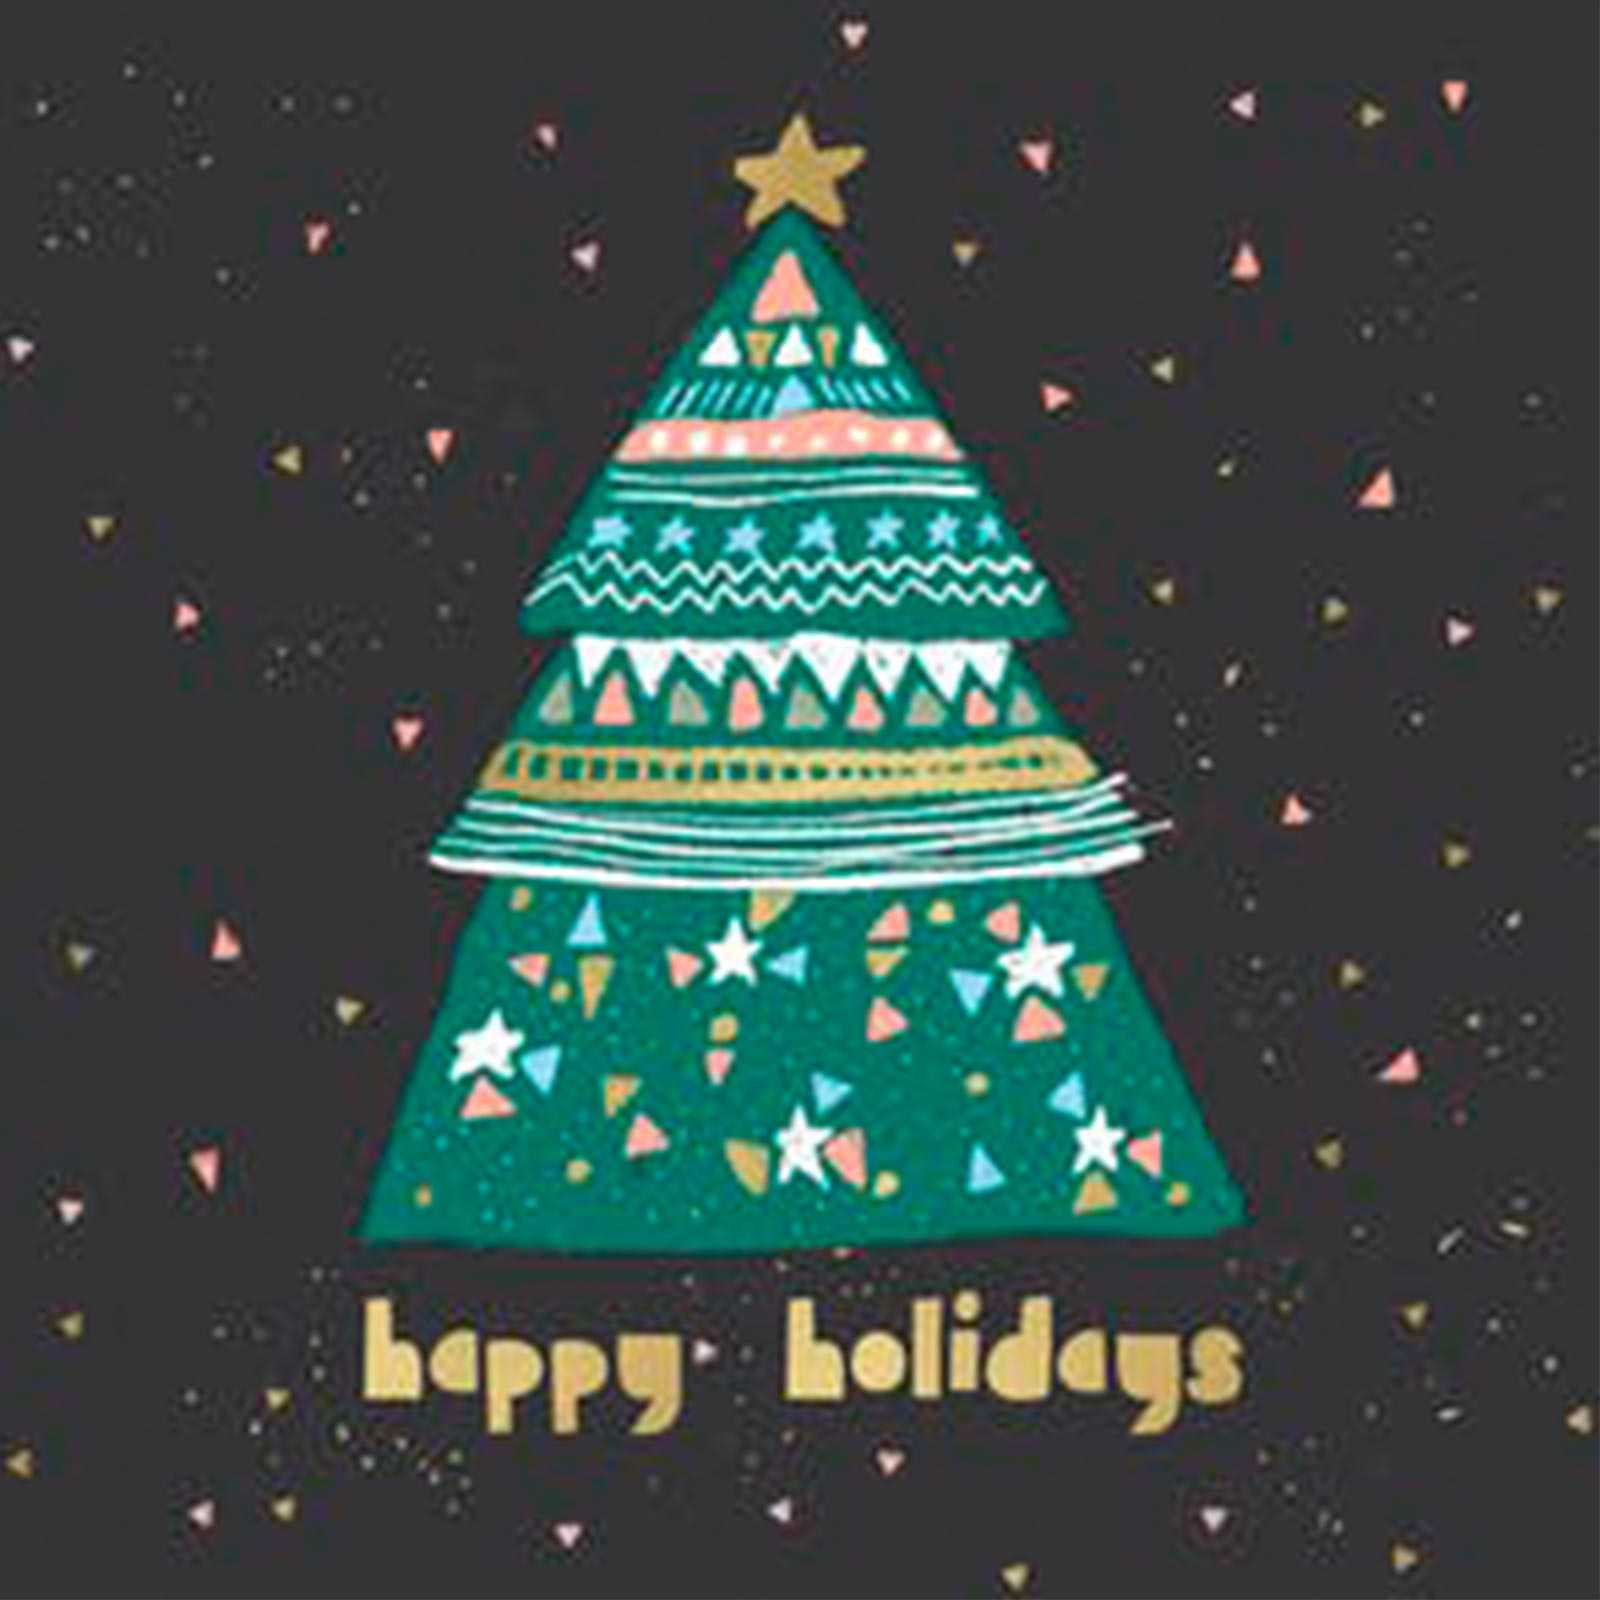 Free Christmas Cards To Print Out And Send This Year Regarding Diy Christmas Card Templates